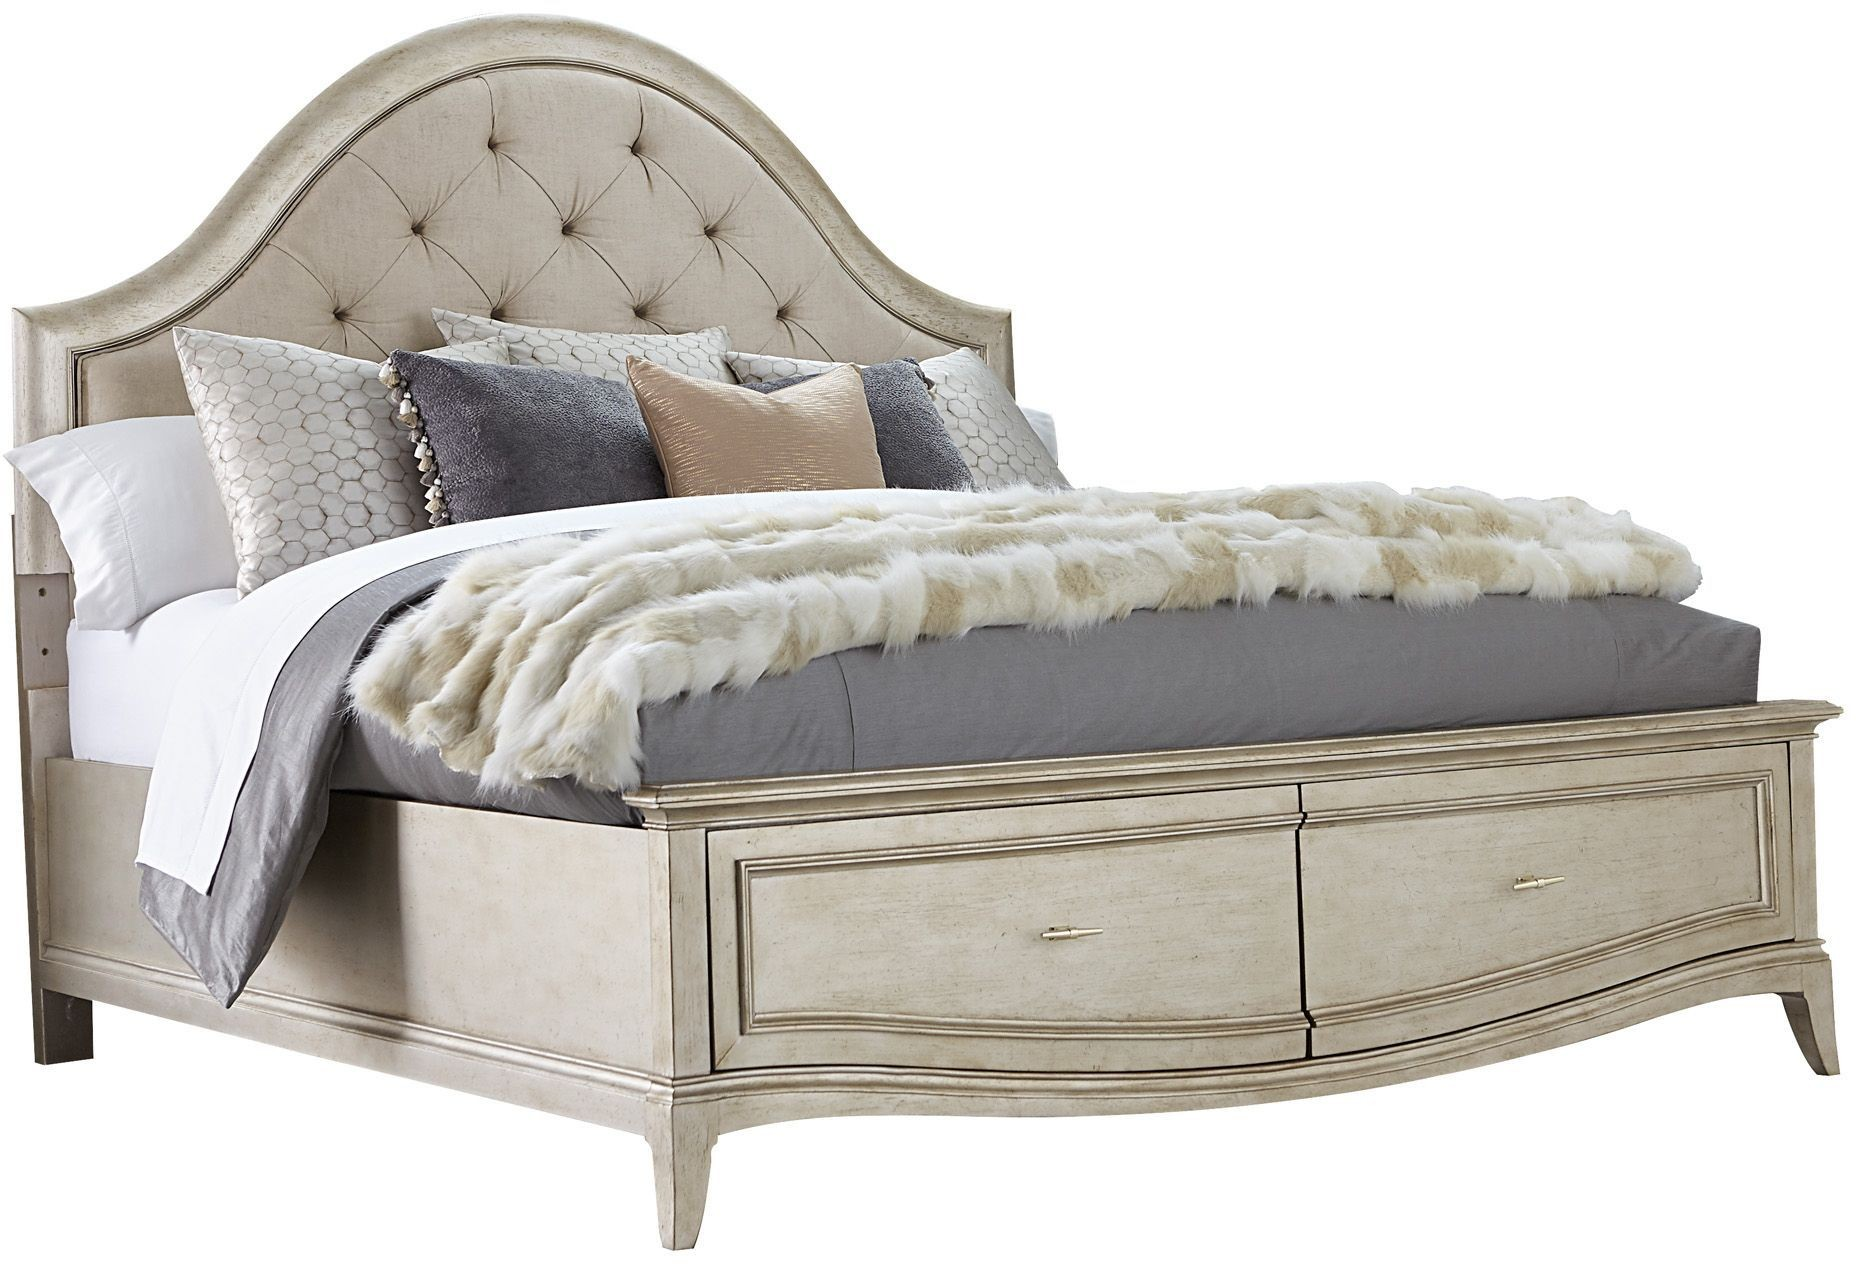 Starlite Silver King Upholstered Storage Panel Bed From